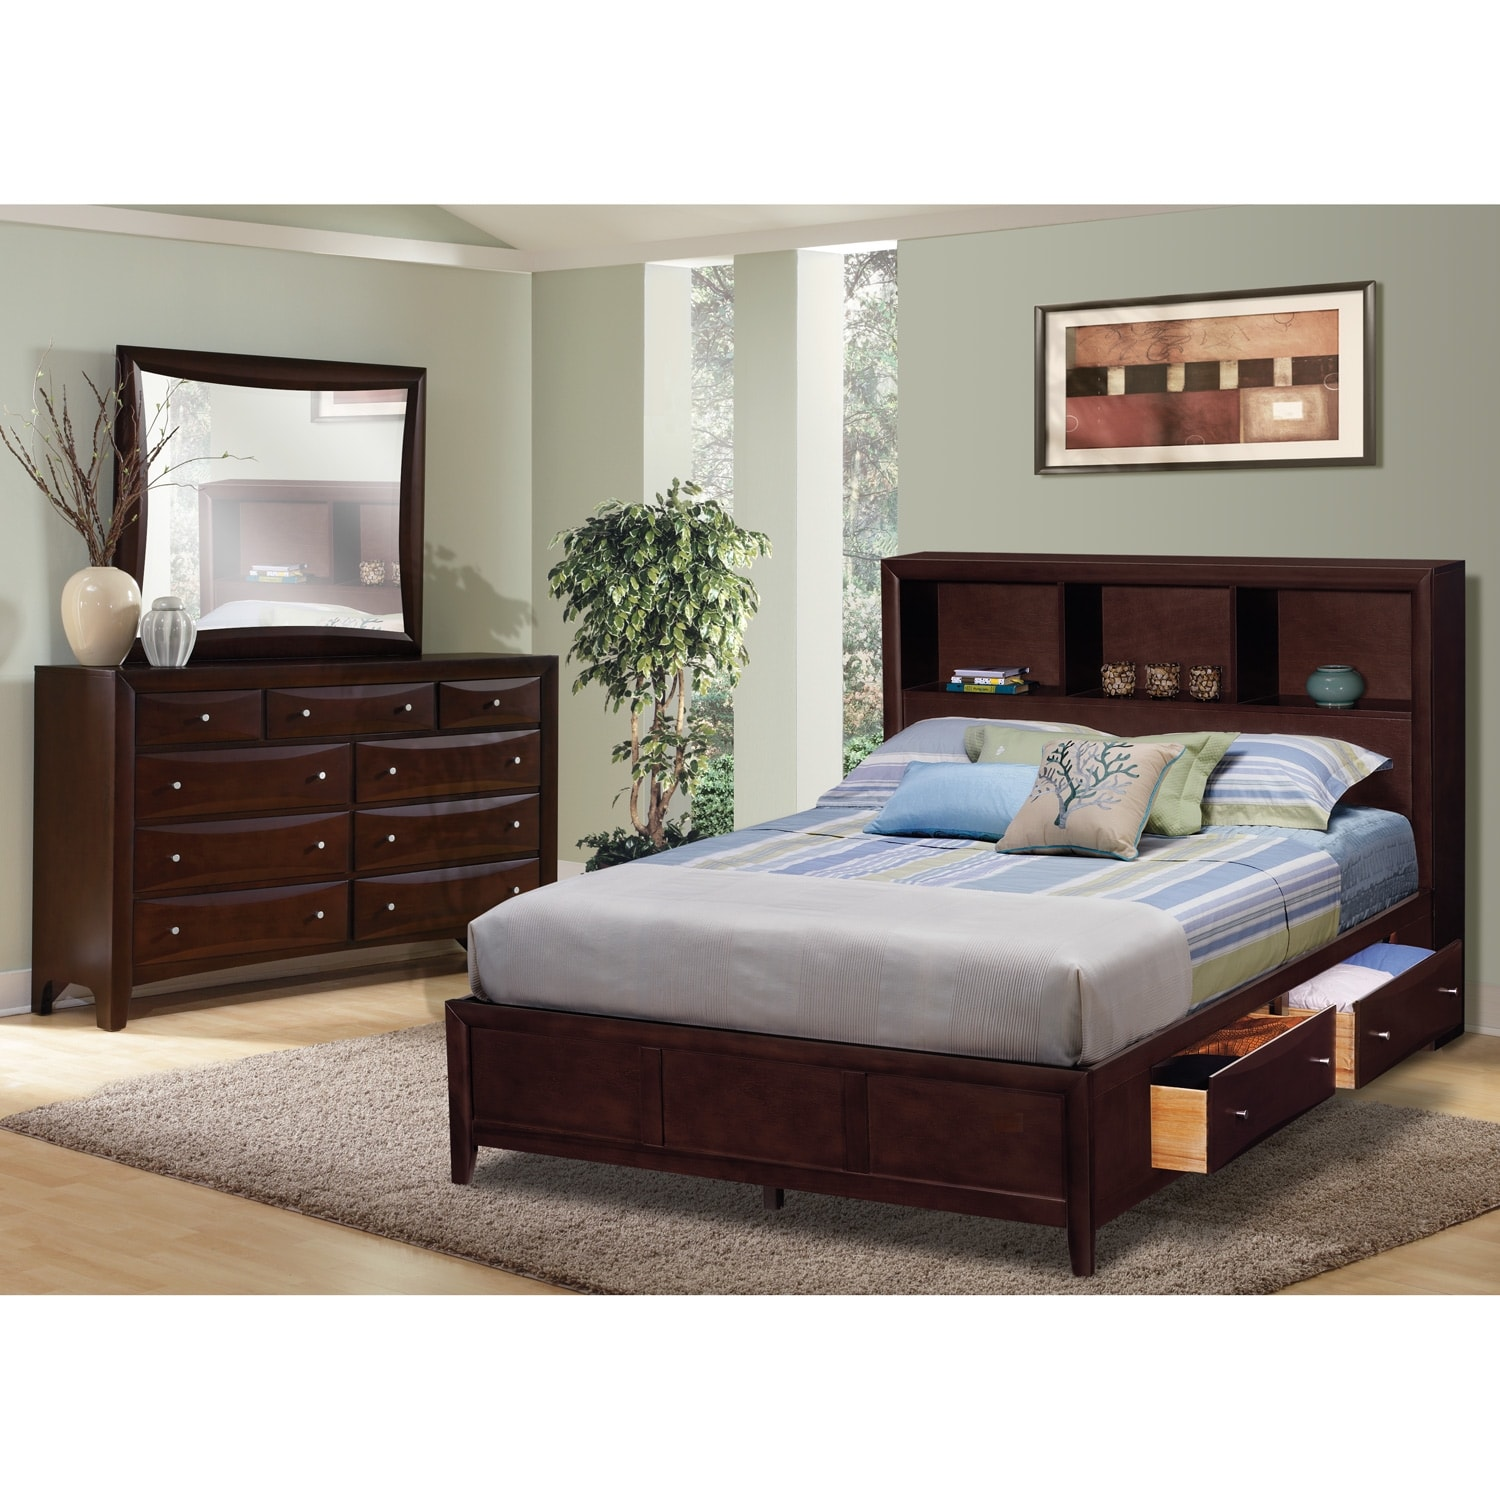 clarion bedroom 5 pc. king wall bedroom - value city furniture